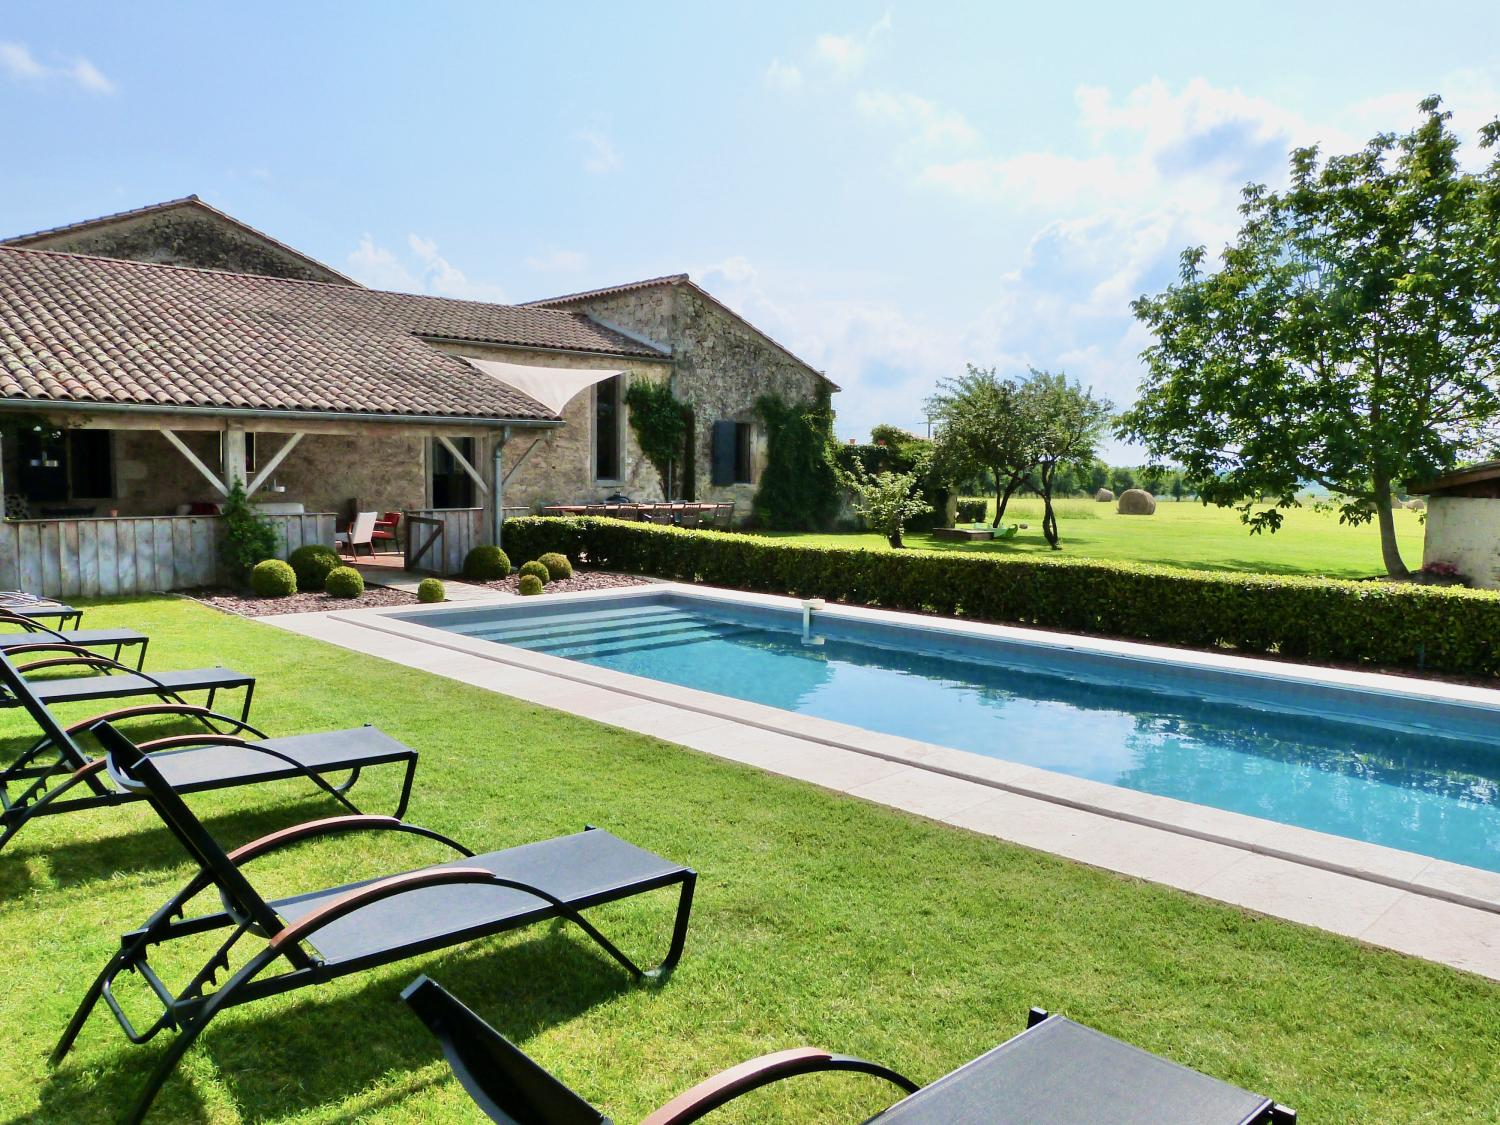 Outdoor Pool 1, La Champetre, Duras, South West France.